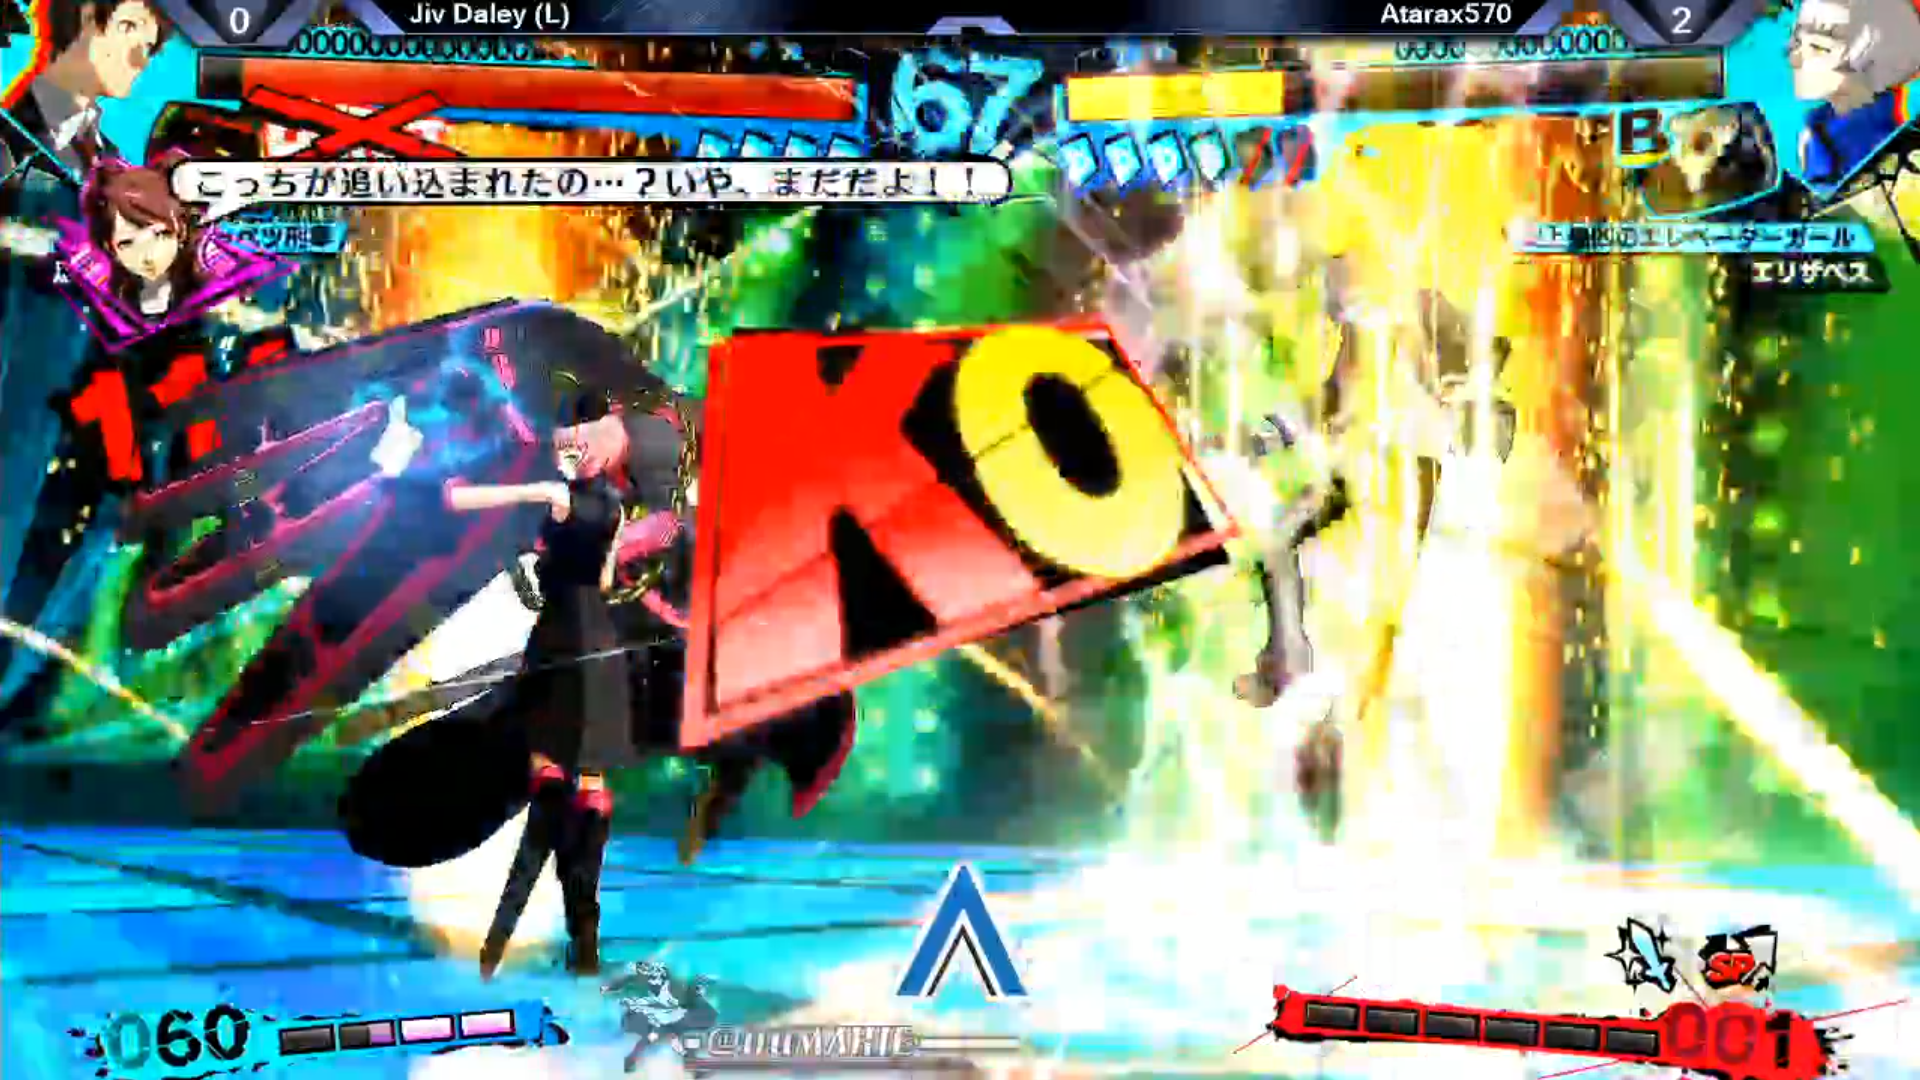 Persona 4 Arena Player Wins Tournament In The Flashiest Way Possible